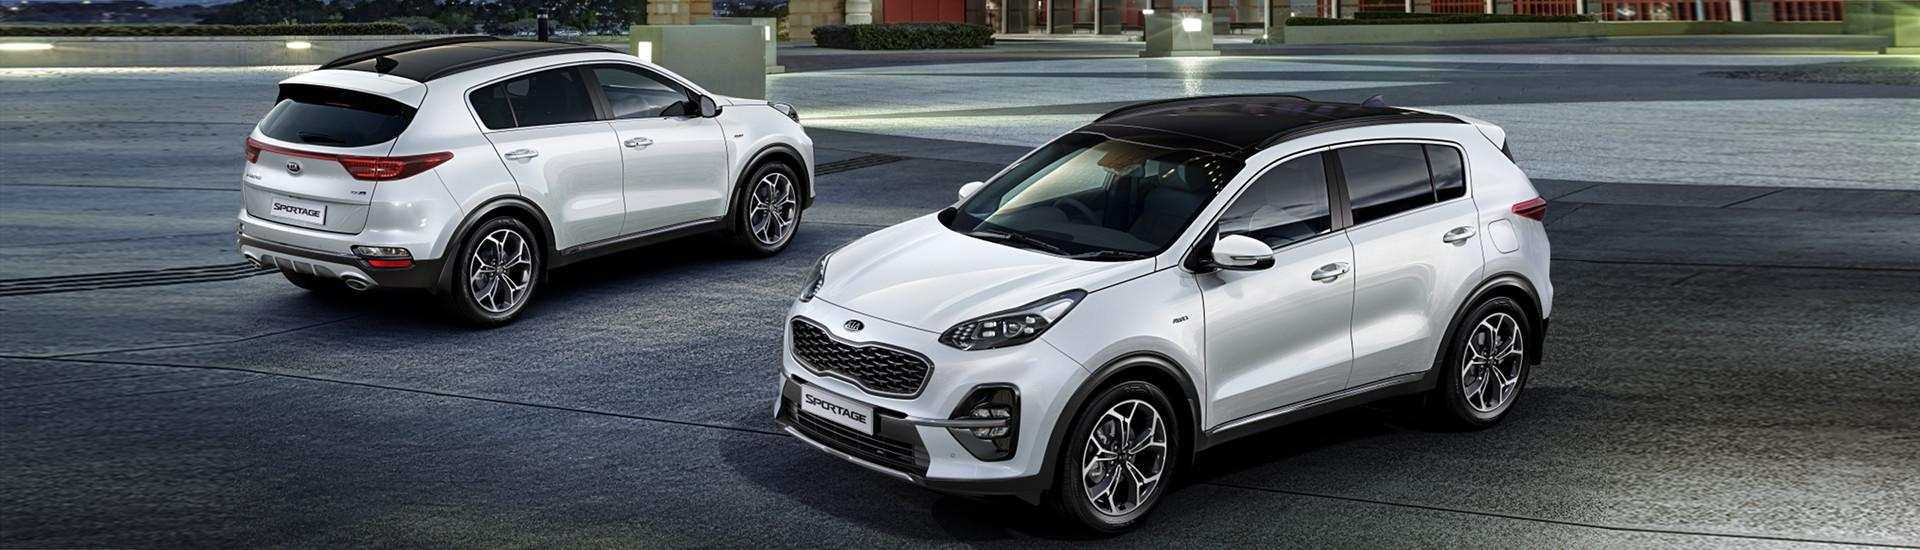 new kia cars for sale in australia - carsales.au